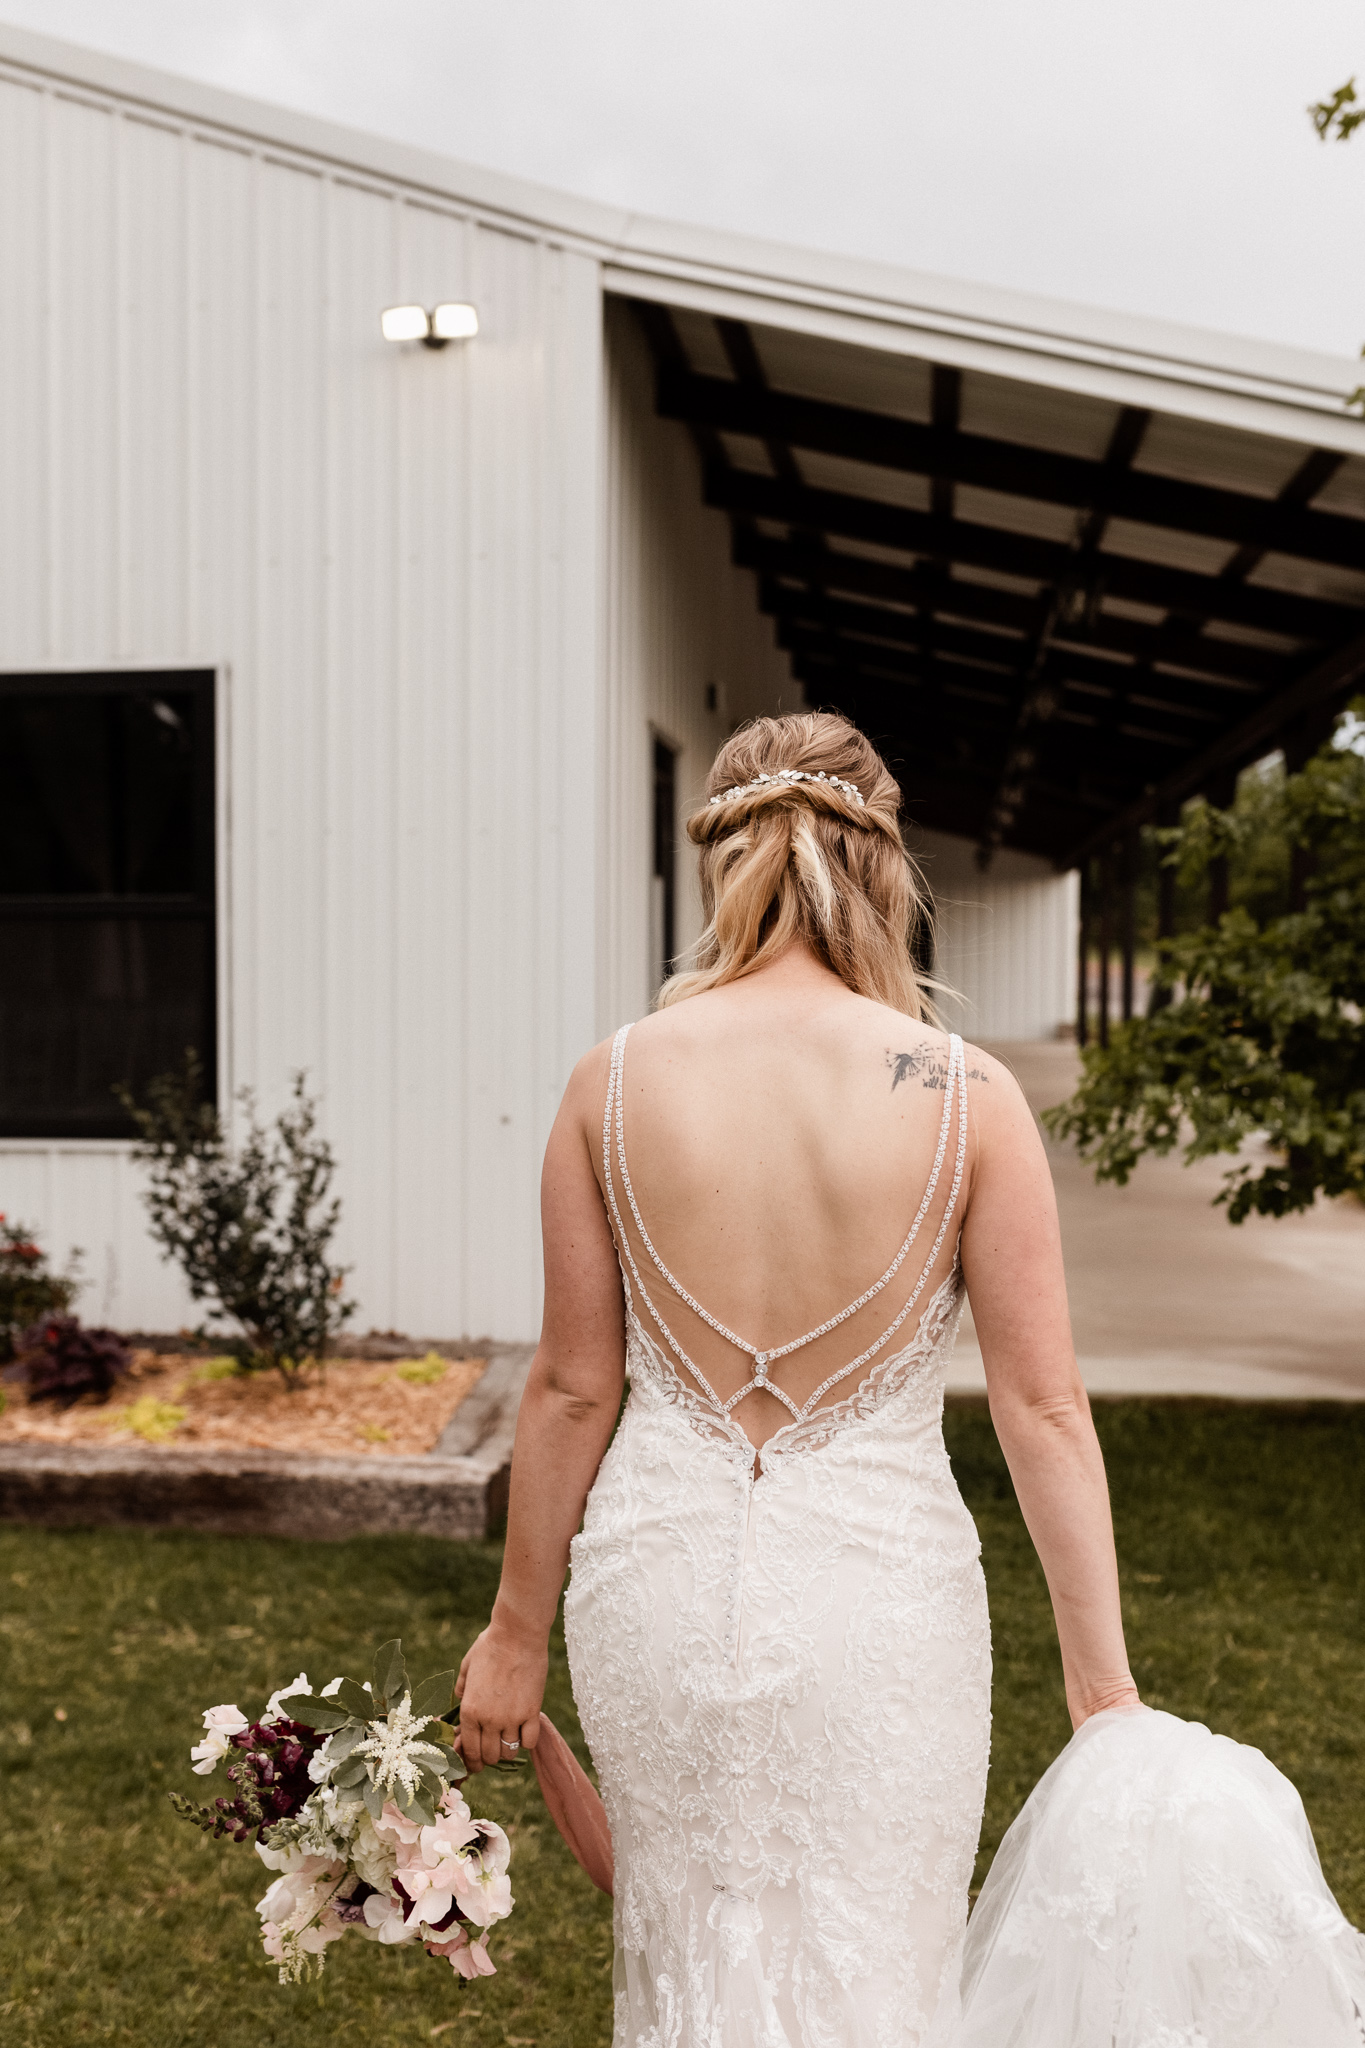 Brittany | Romantic Outdoor Bridals | Oklahoma Wedding Photographer-17.jpg